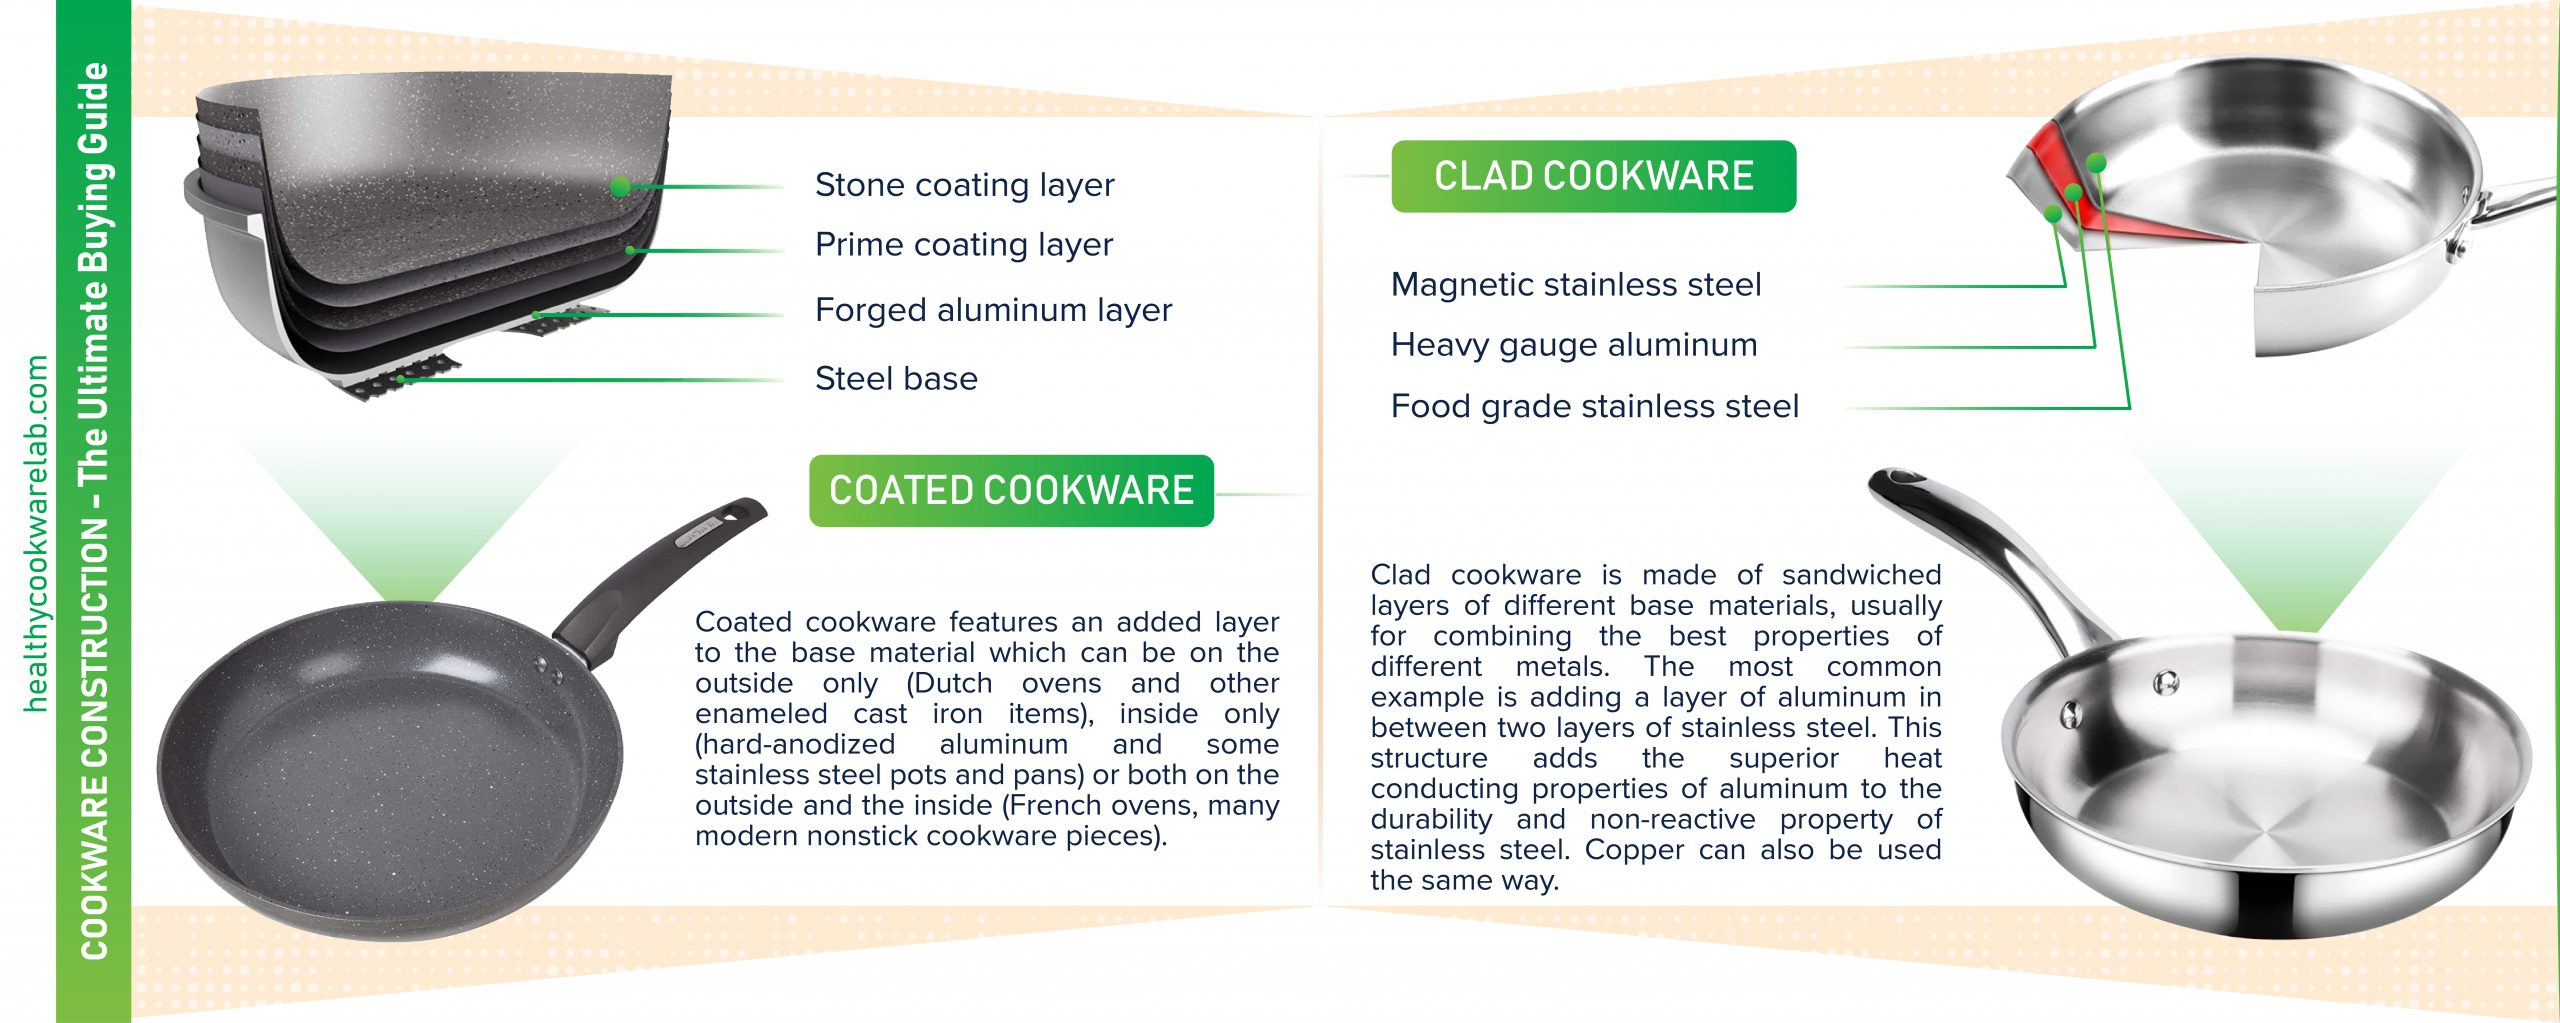 infographic of cookware constructions